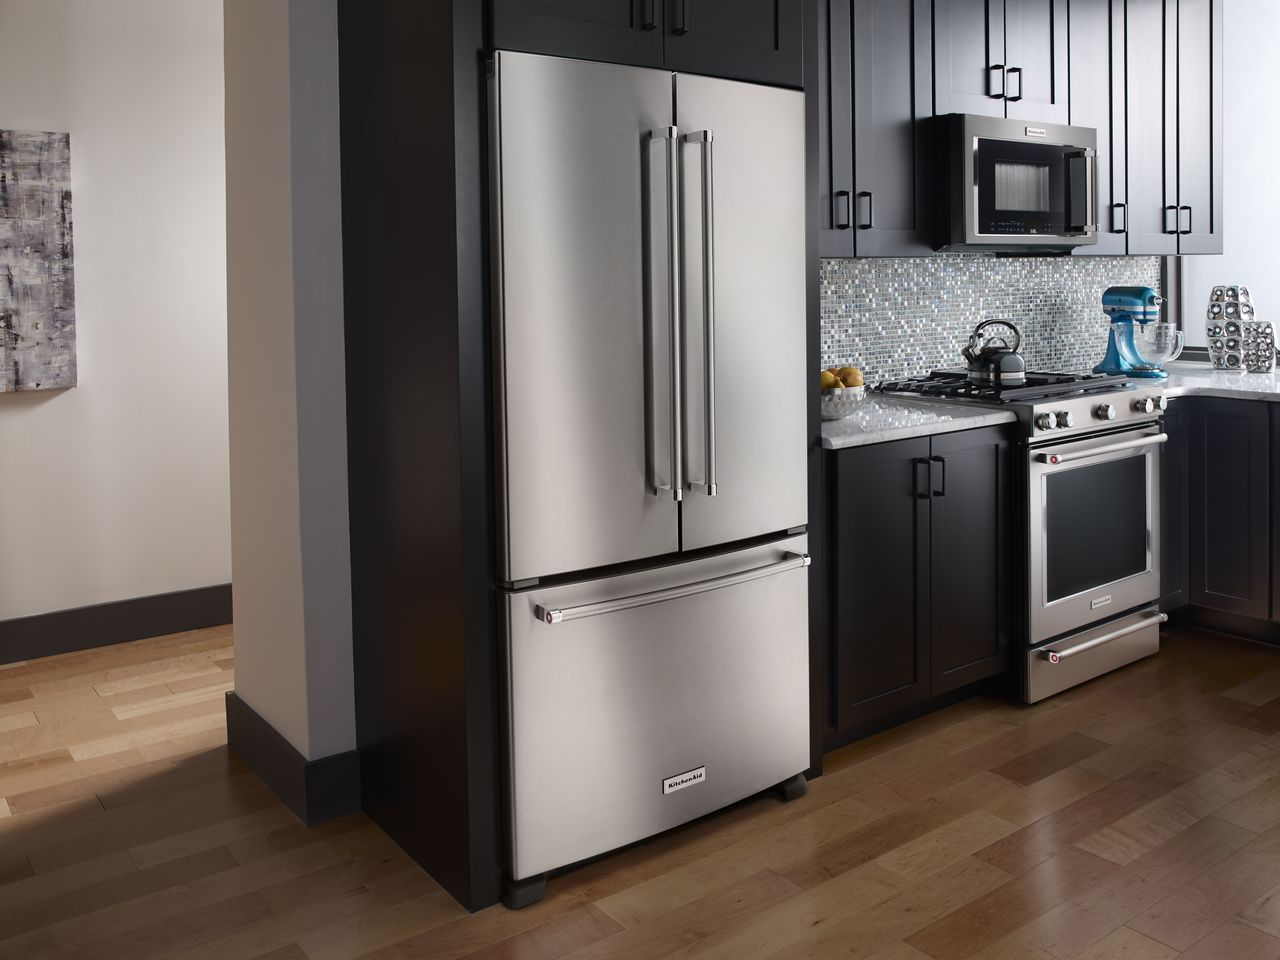 ft amazon kitchen refrigerator french door dp architect series stainless com ii appliances steel kitchenaid aid cu